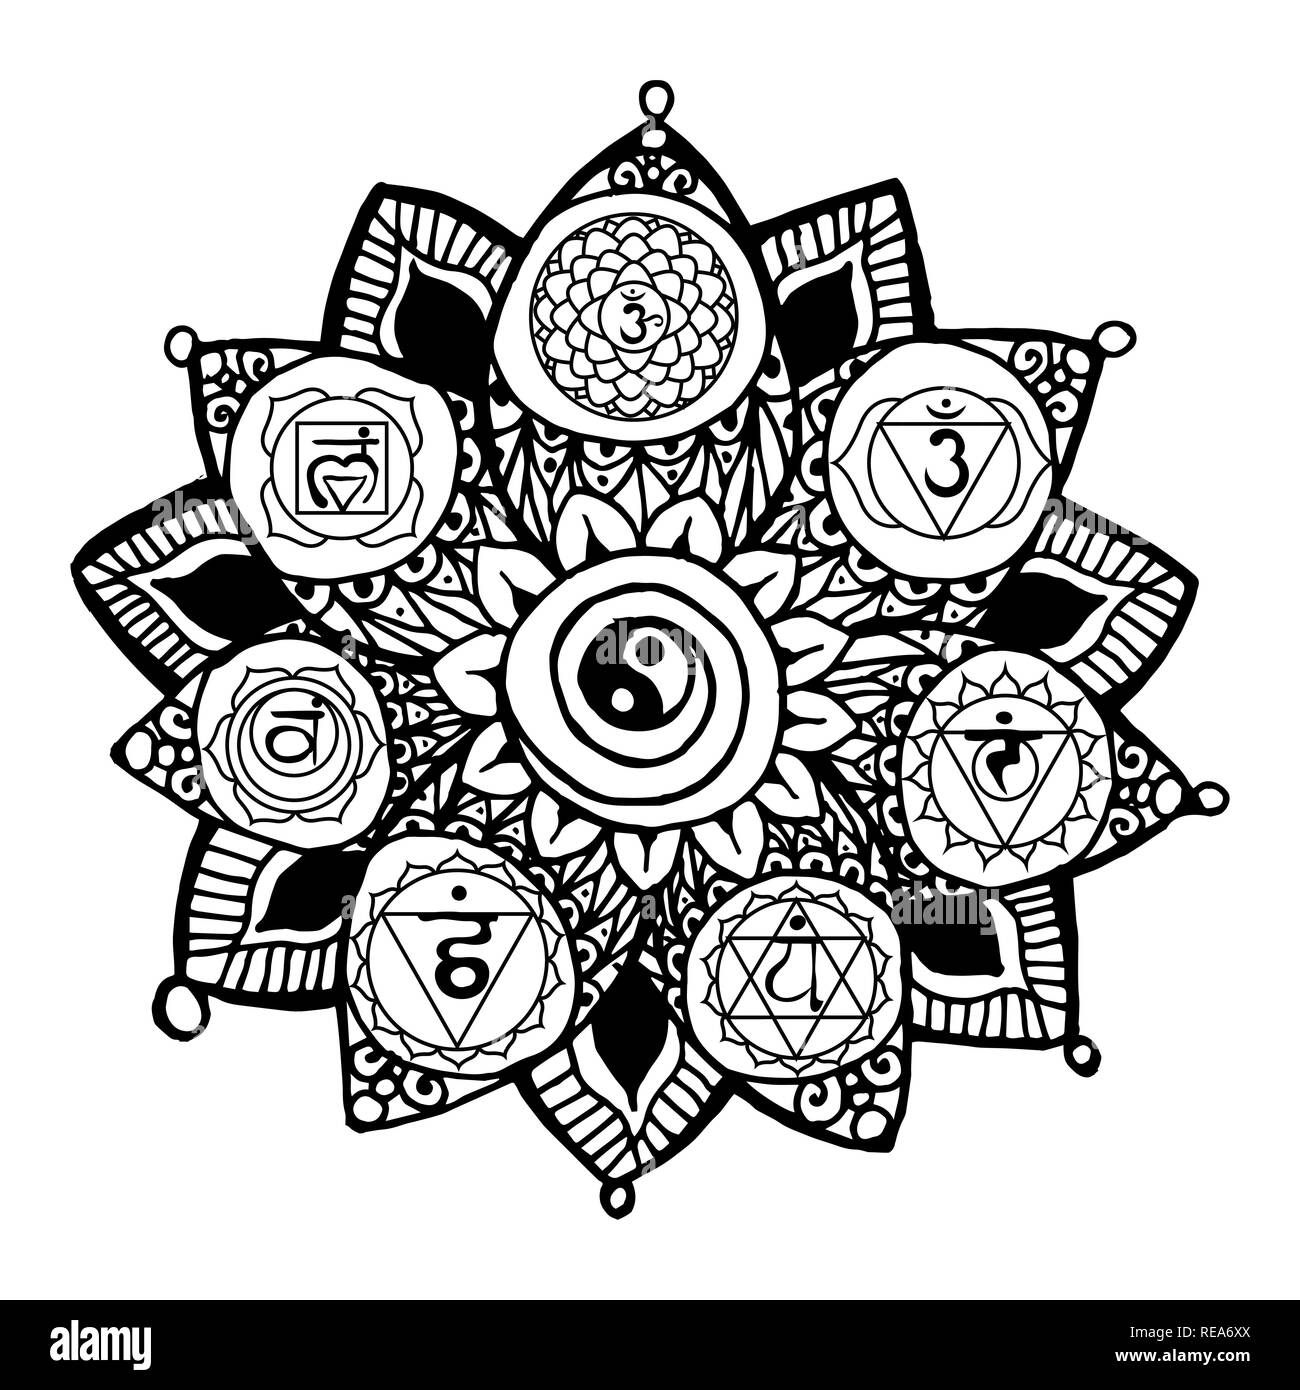 doodle style monochrome black line art lotus with yoga chakras pictogram and hieroglyph vector illustration for print design adult coloring page template REA6XX